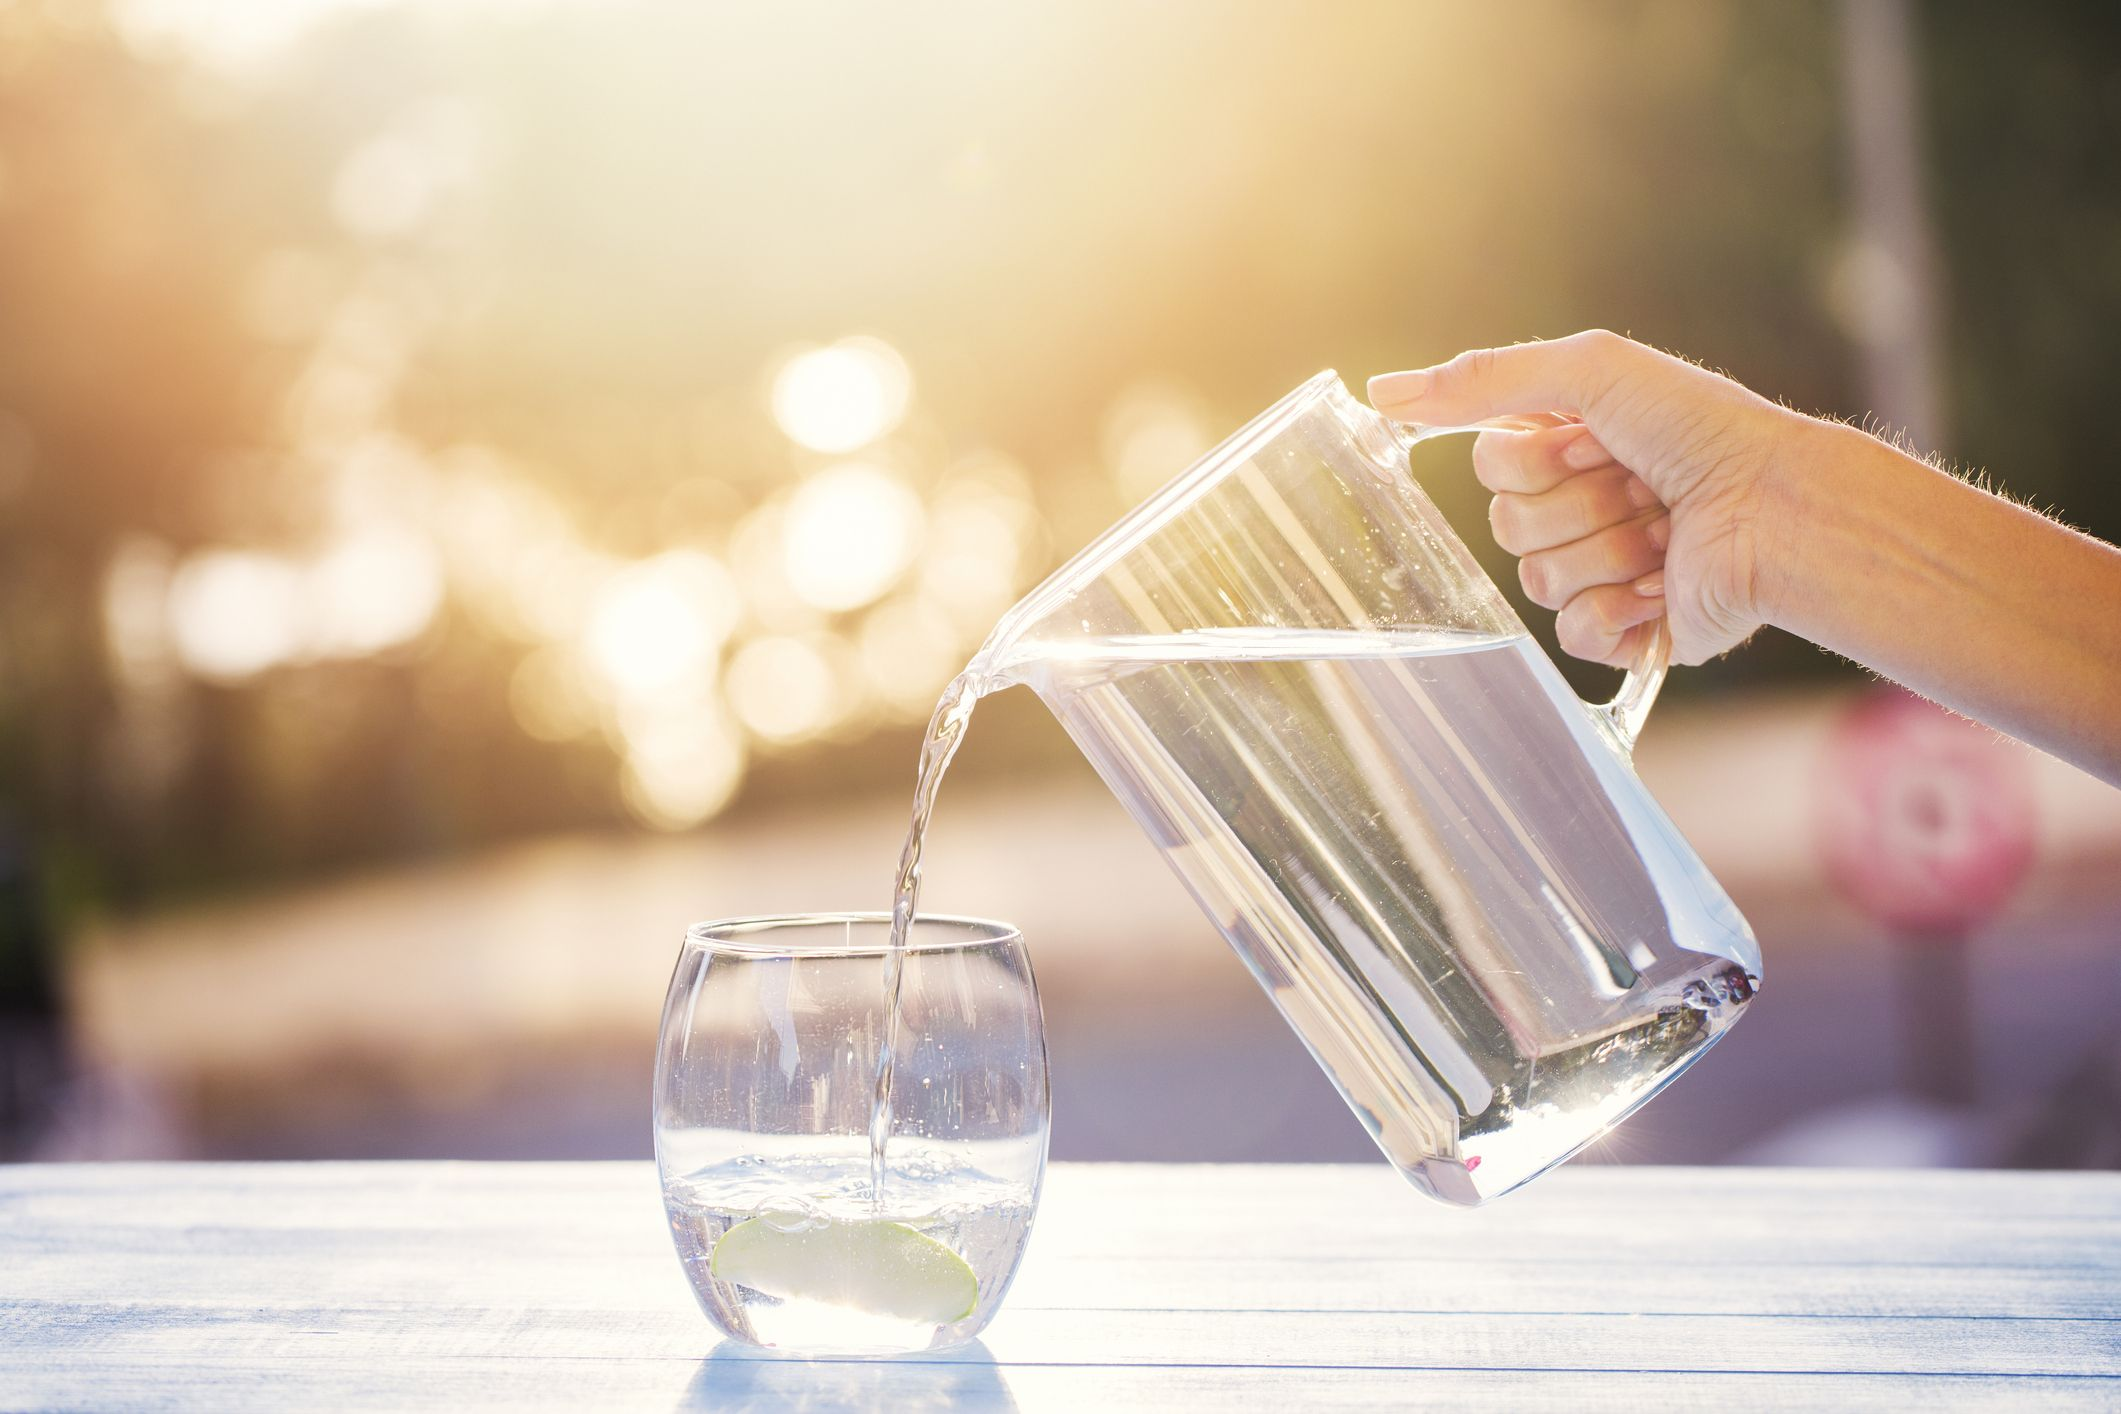 7 Smart Ways to Stay Hydrated This Summer